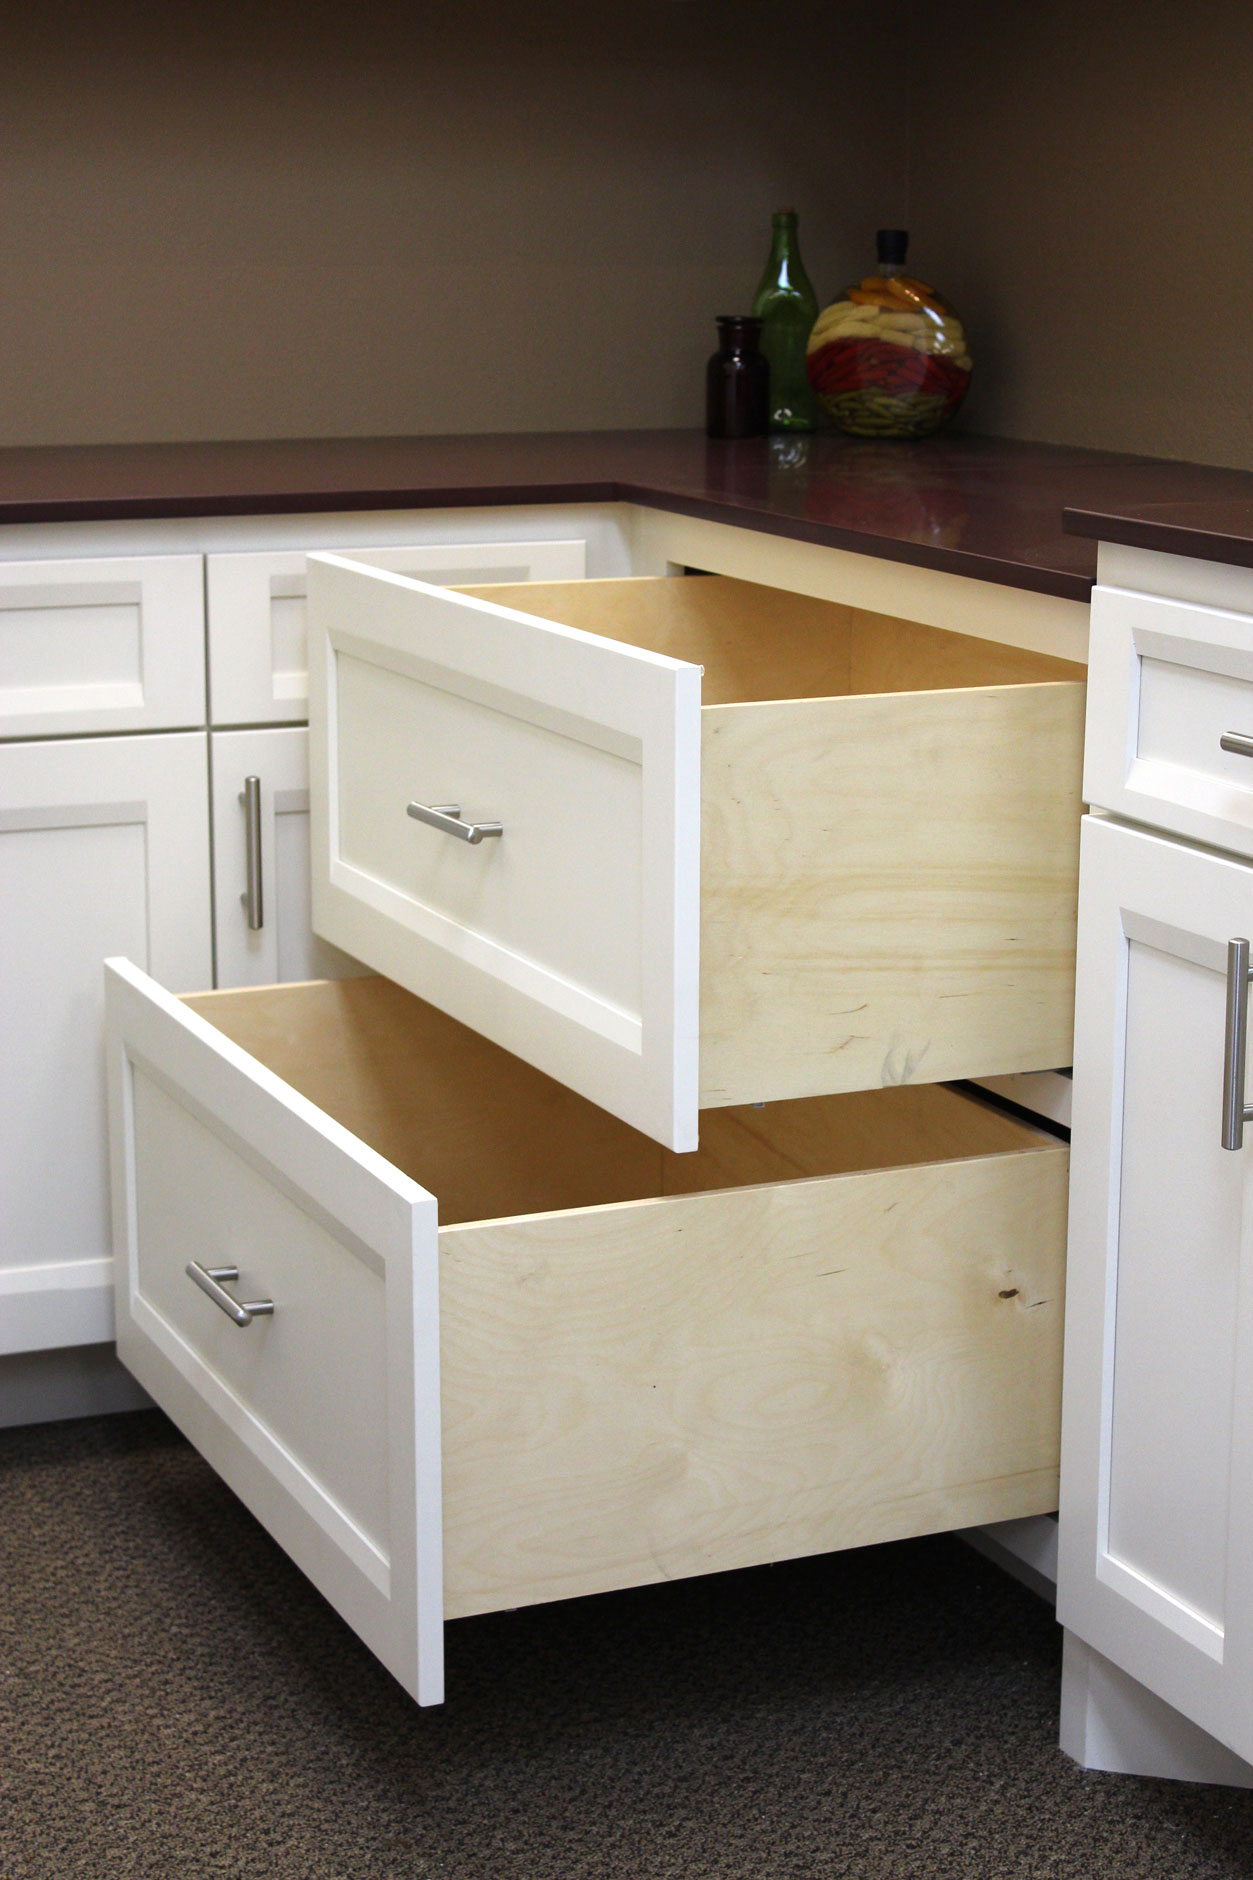 Universal kitchen design - Burrows Cabinets